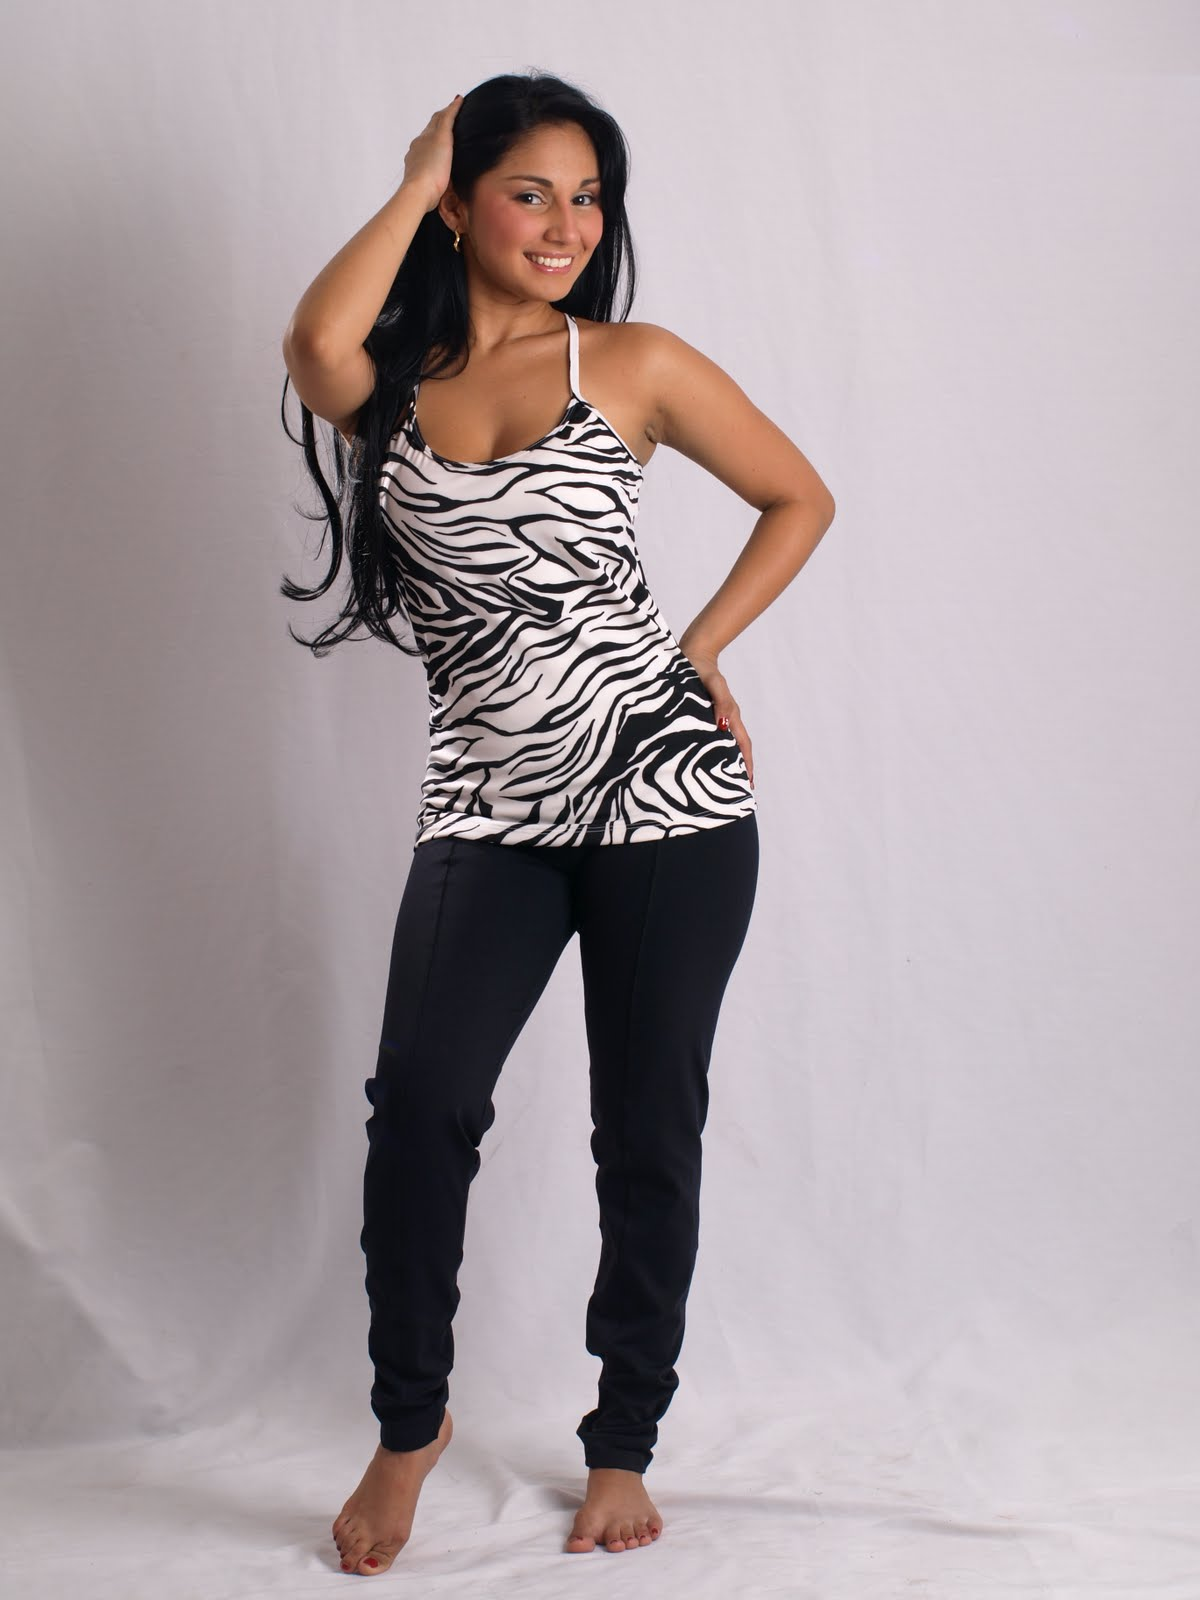 Hot Latina In Business Fitness Active Wear Yoga Pants Tips-7348